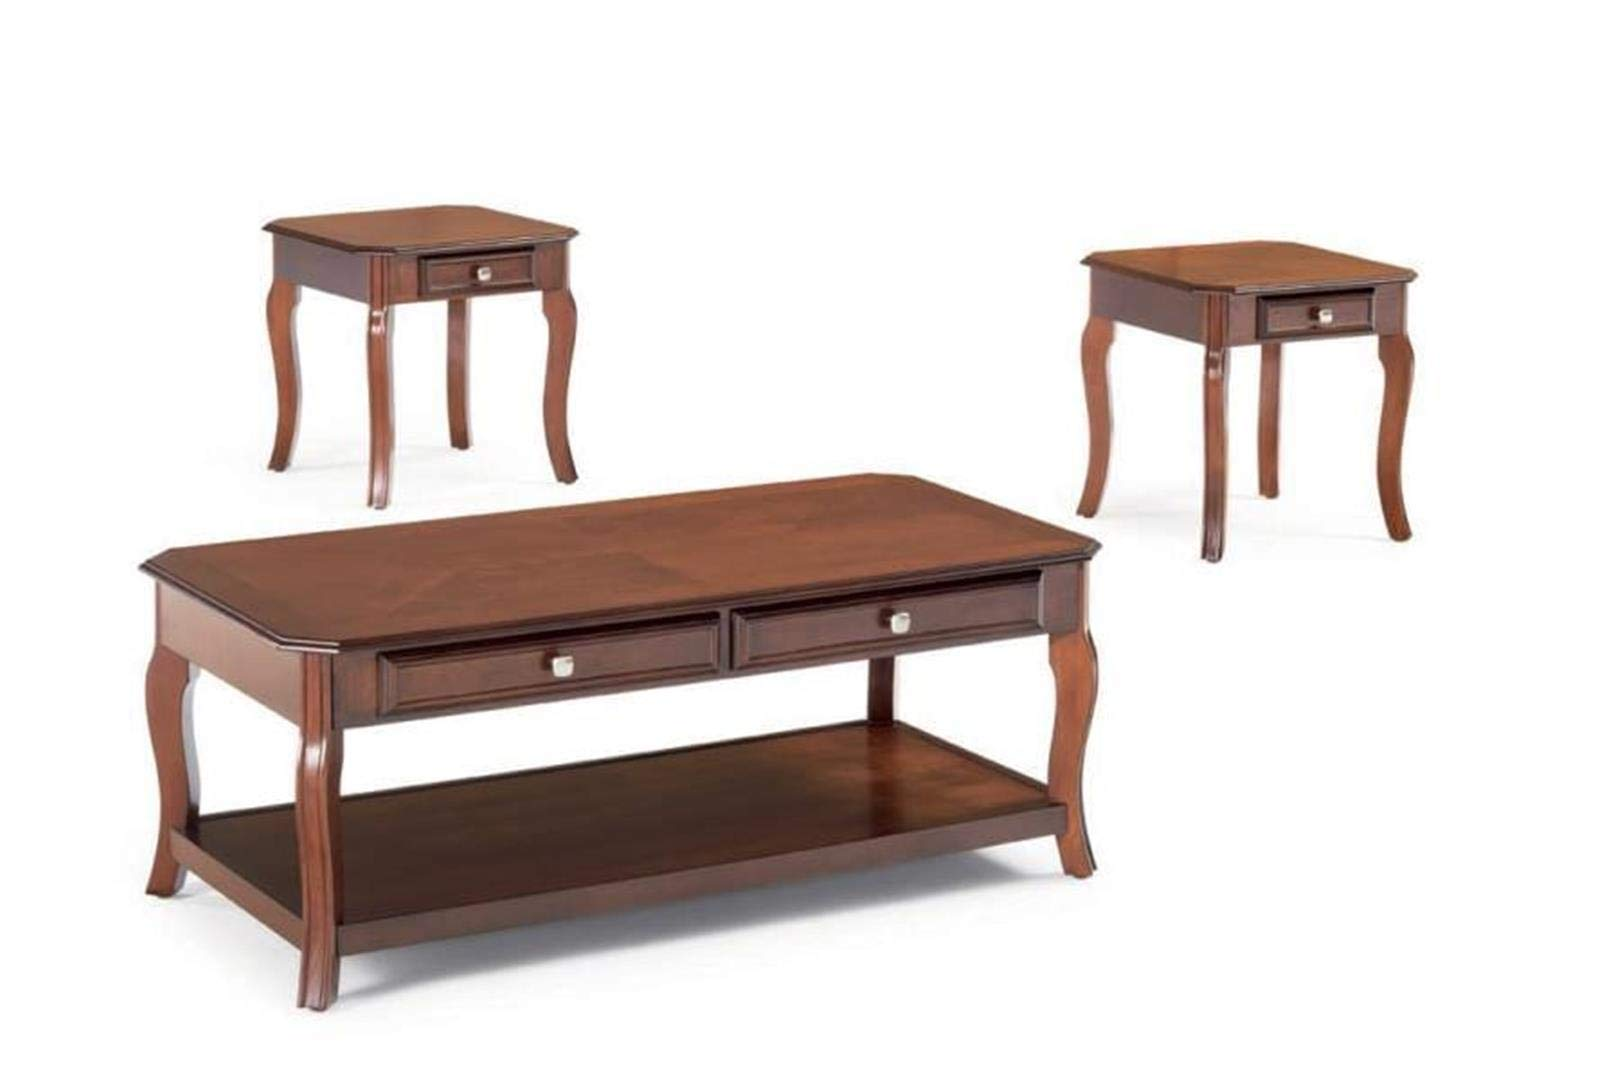 3-piece Occasional Table Set with Parquet Top Warm Light Bourbon by Coaster Home Furnishings